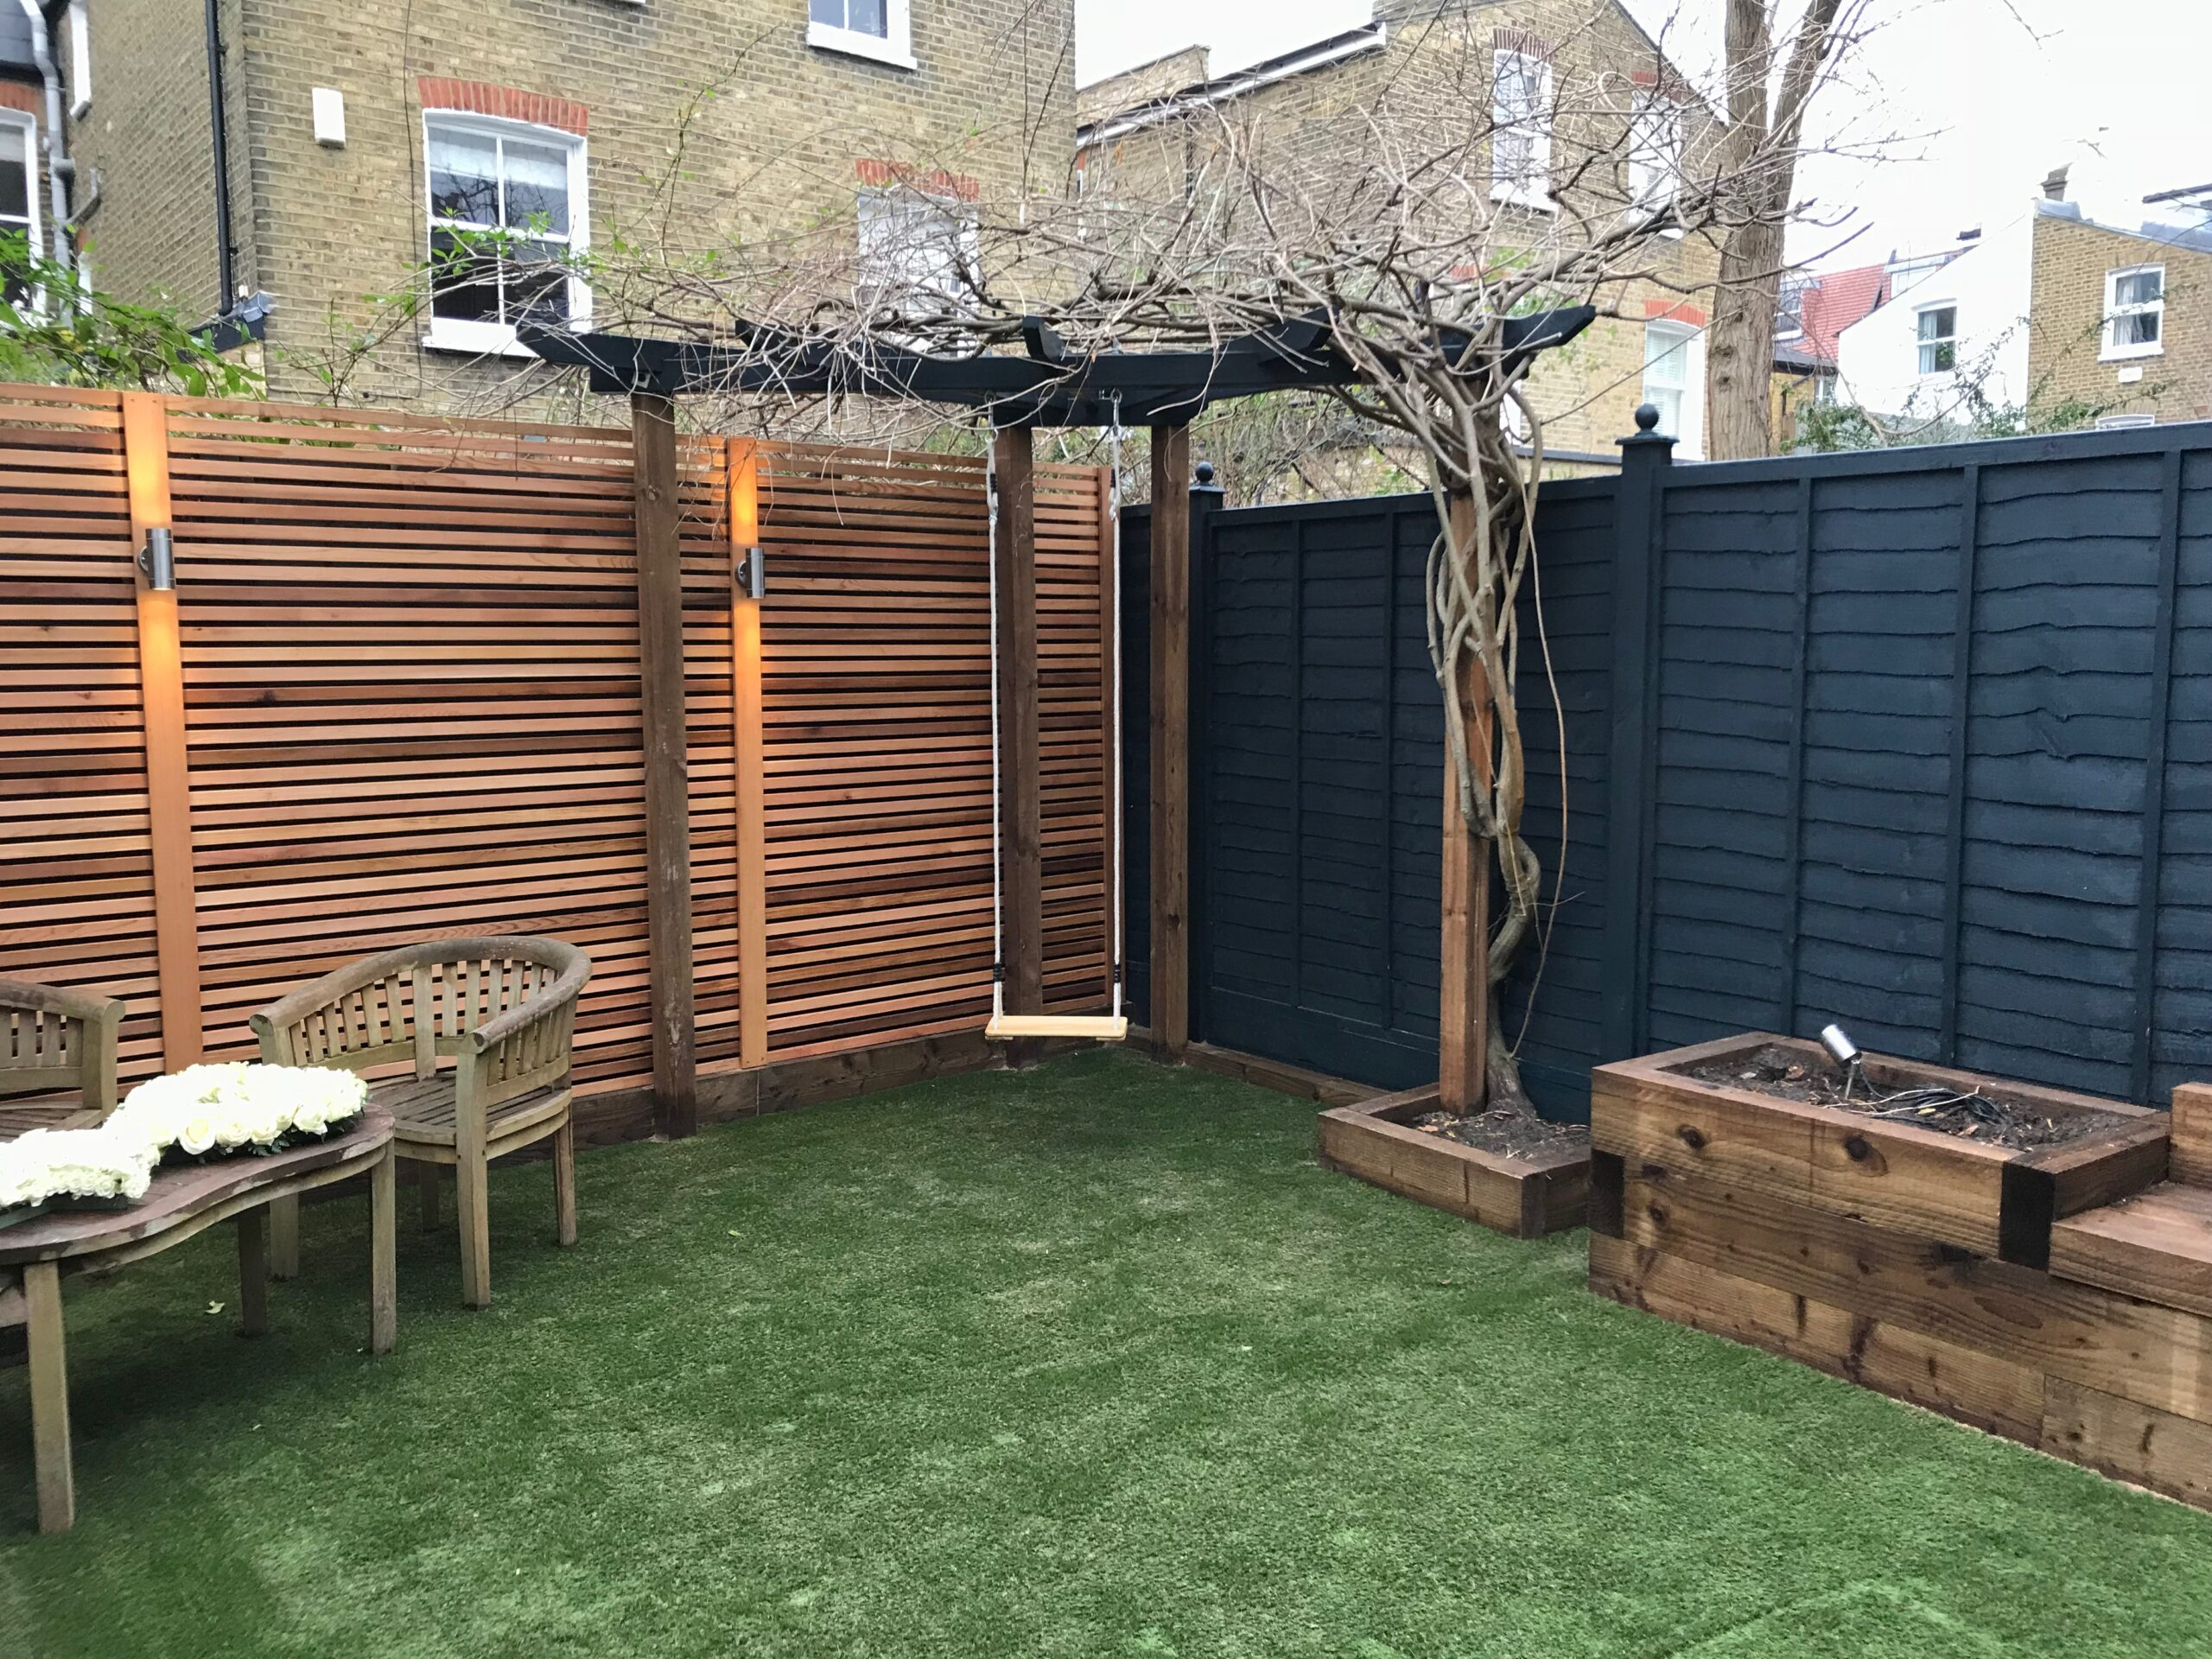 A neat garden transformation - including uplighting along fencing and a swing!